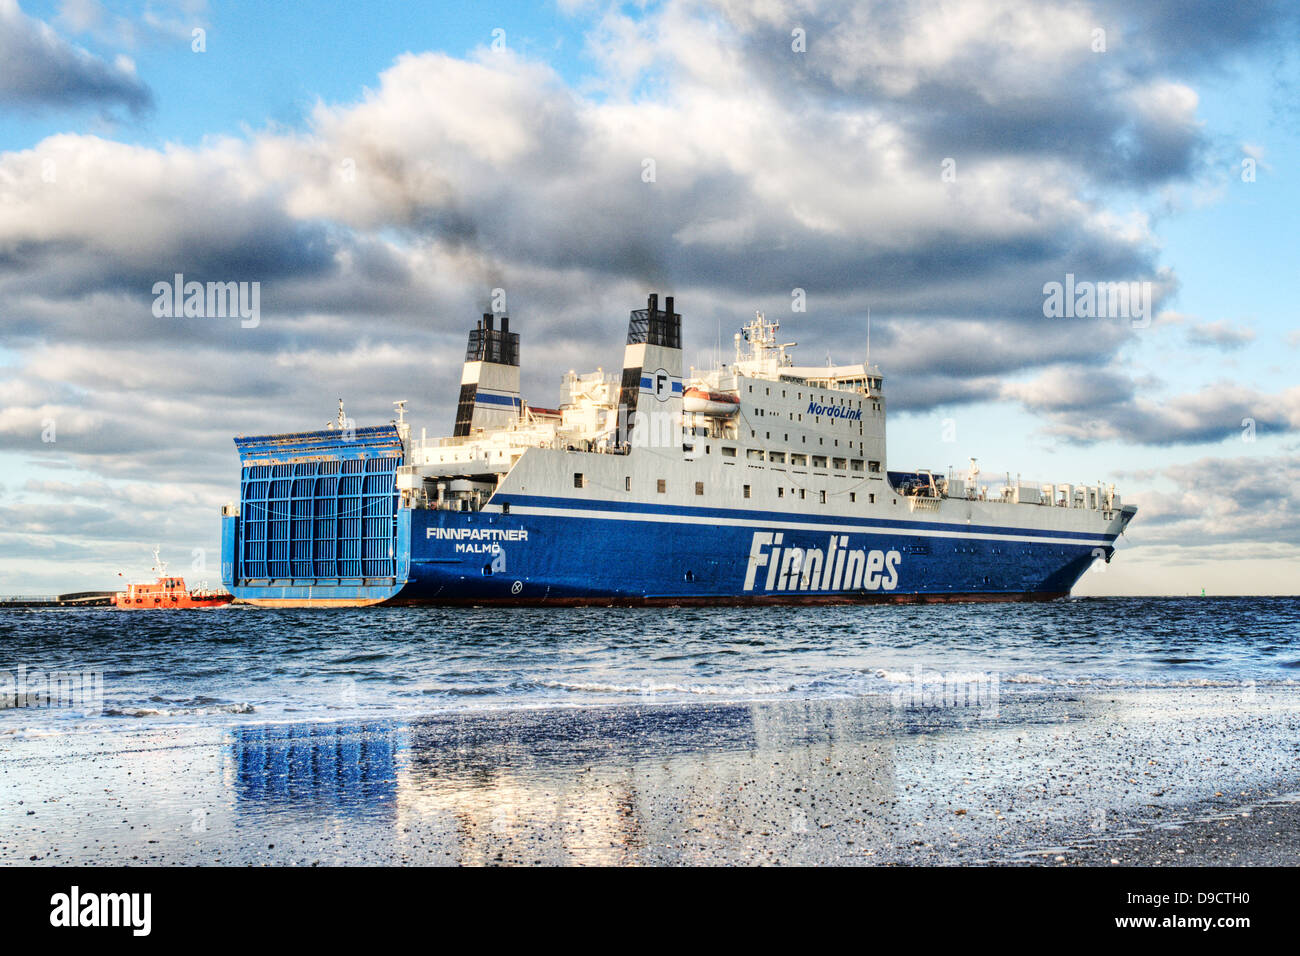 Ferry of the Finnlines - Stock Image